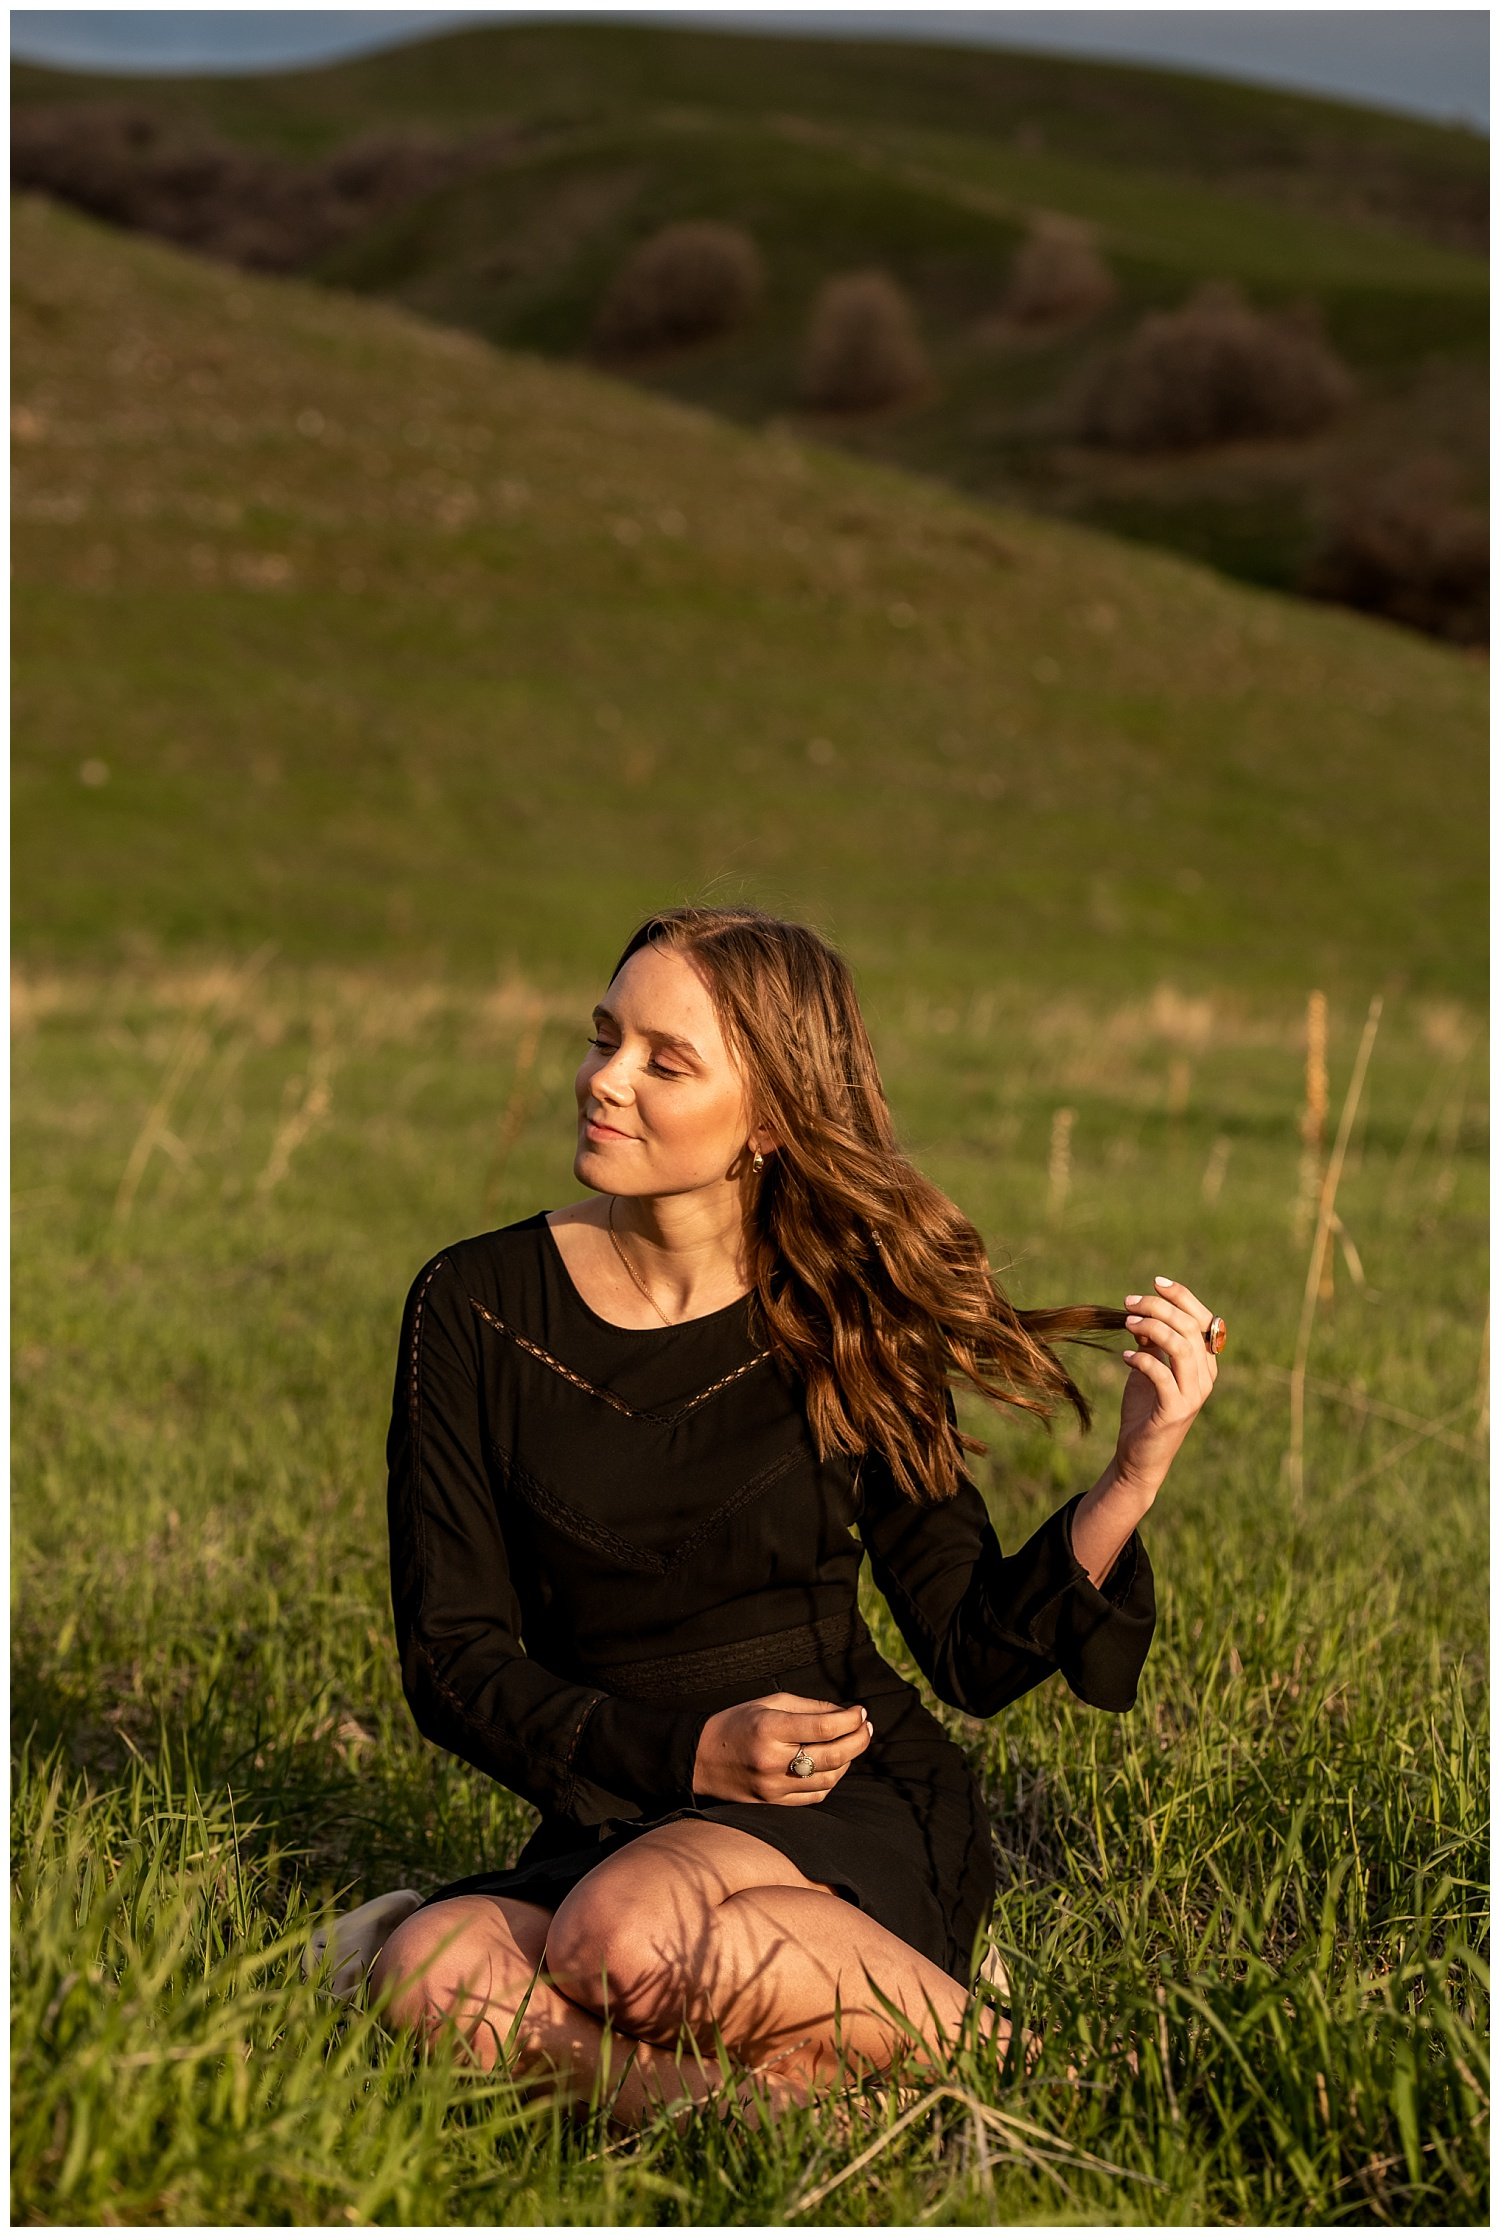 Utah Senior Photographer, Dan Page Photography, Tunnel Springs North Salt Lake Senior Portraits (12).jpg